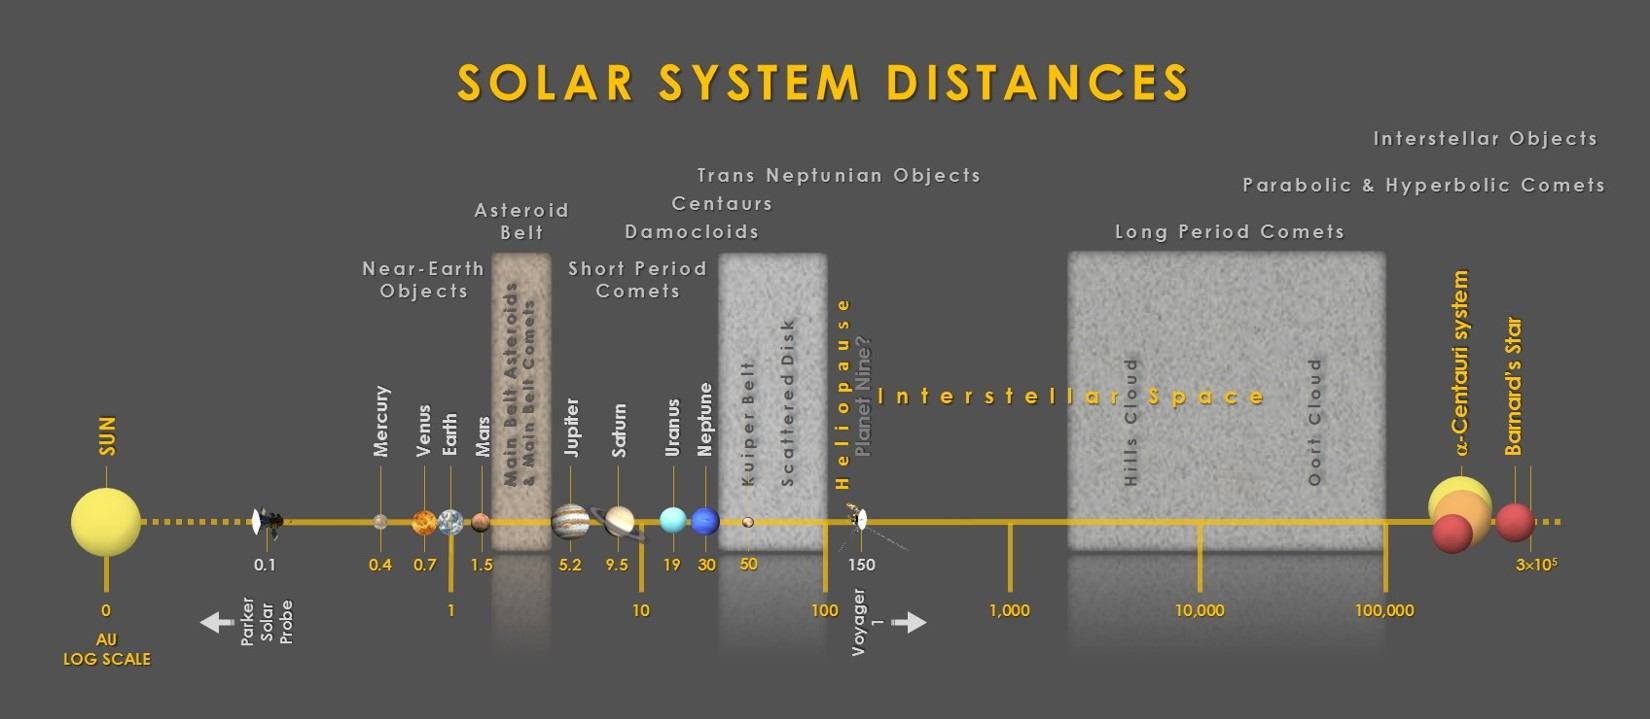 Solar System distances (log scale). How far is the Earth from the Sun? How far is  the Sun from the nearest star Centauri? Where are asteroids and comets located? Where are Kuiper Belt Objects located? Where are Scattered Disk Objects located? Where are Centaurs located? Where re Damocloids located? What is the difference between short period and long period comets? Where are Trans-Neptunian Objects located? Where does interstellar space begin? Where is the Hills Cloud? Where is the Oort Cloud?